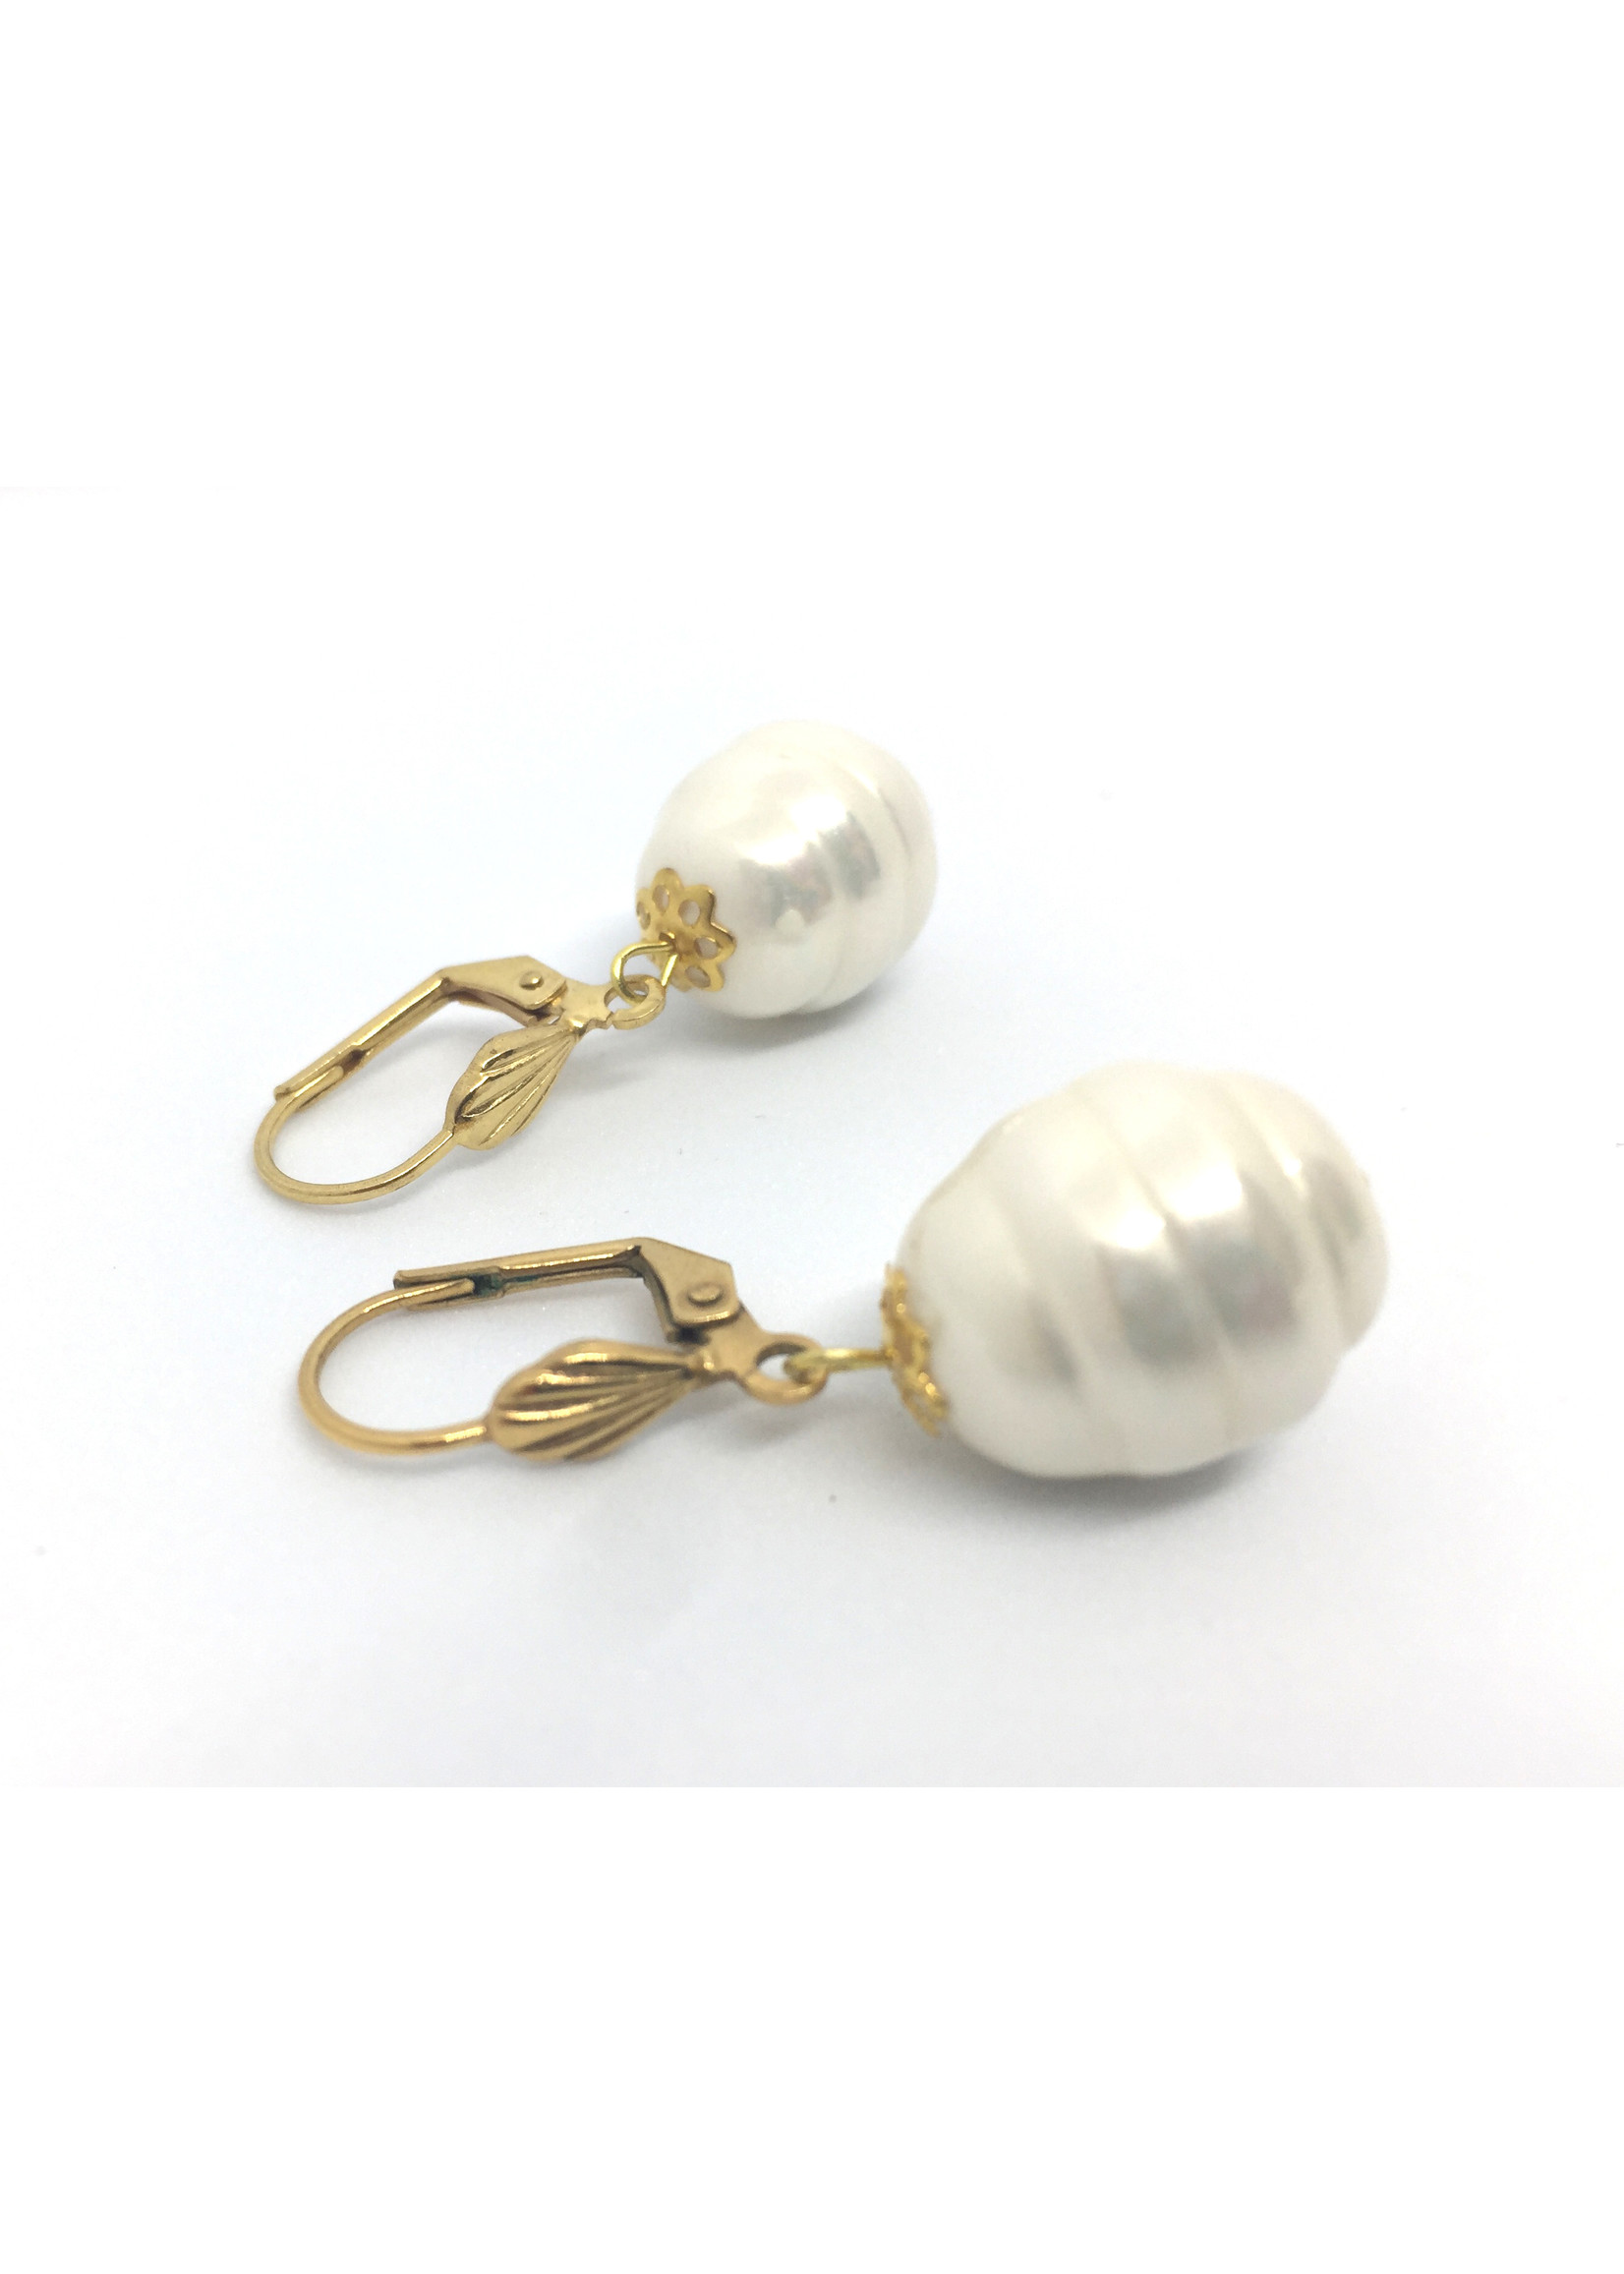 Gold plated earrings from Els de Ruyter with Shell pearls